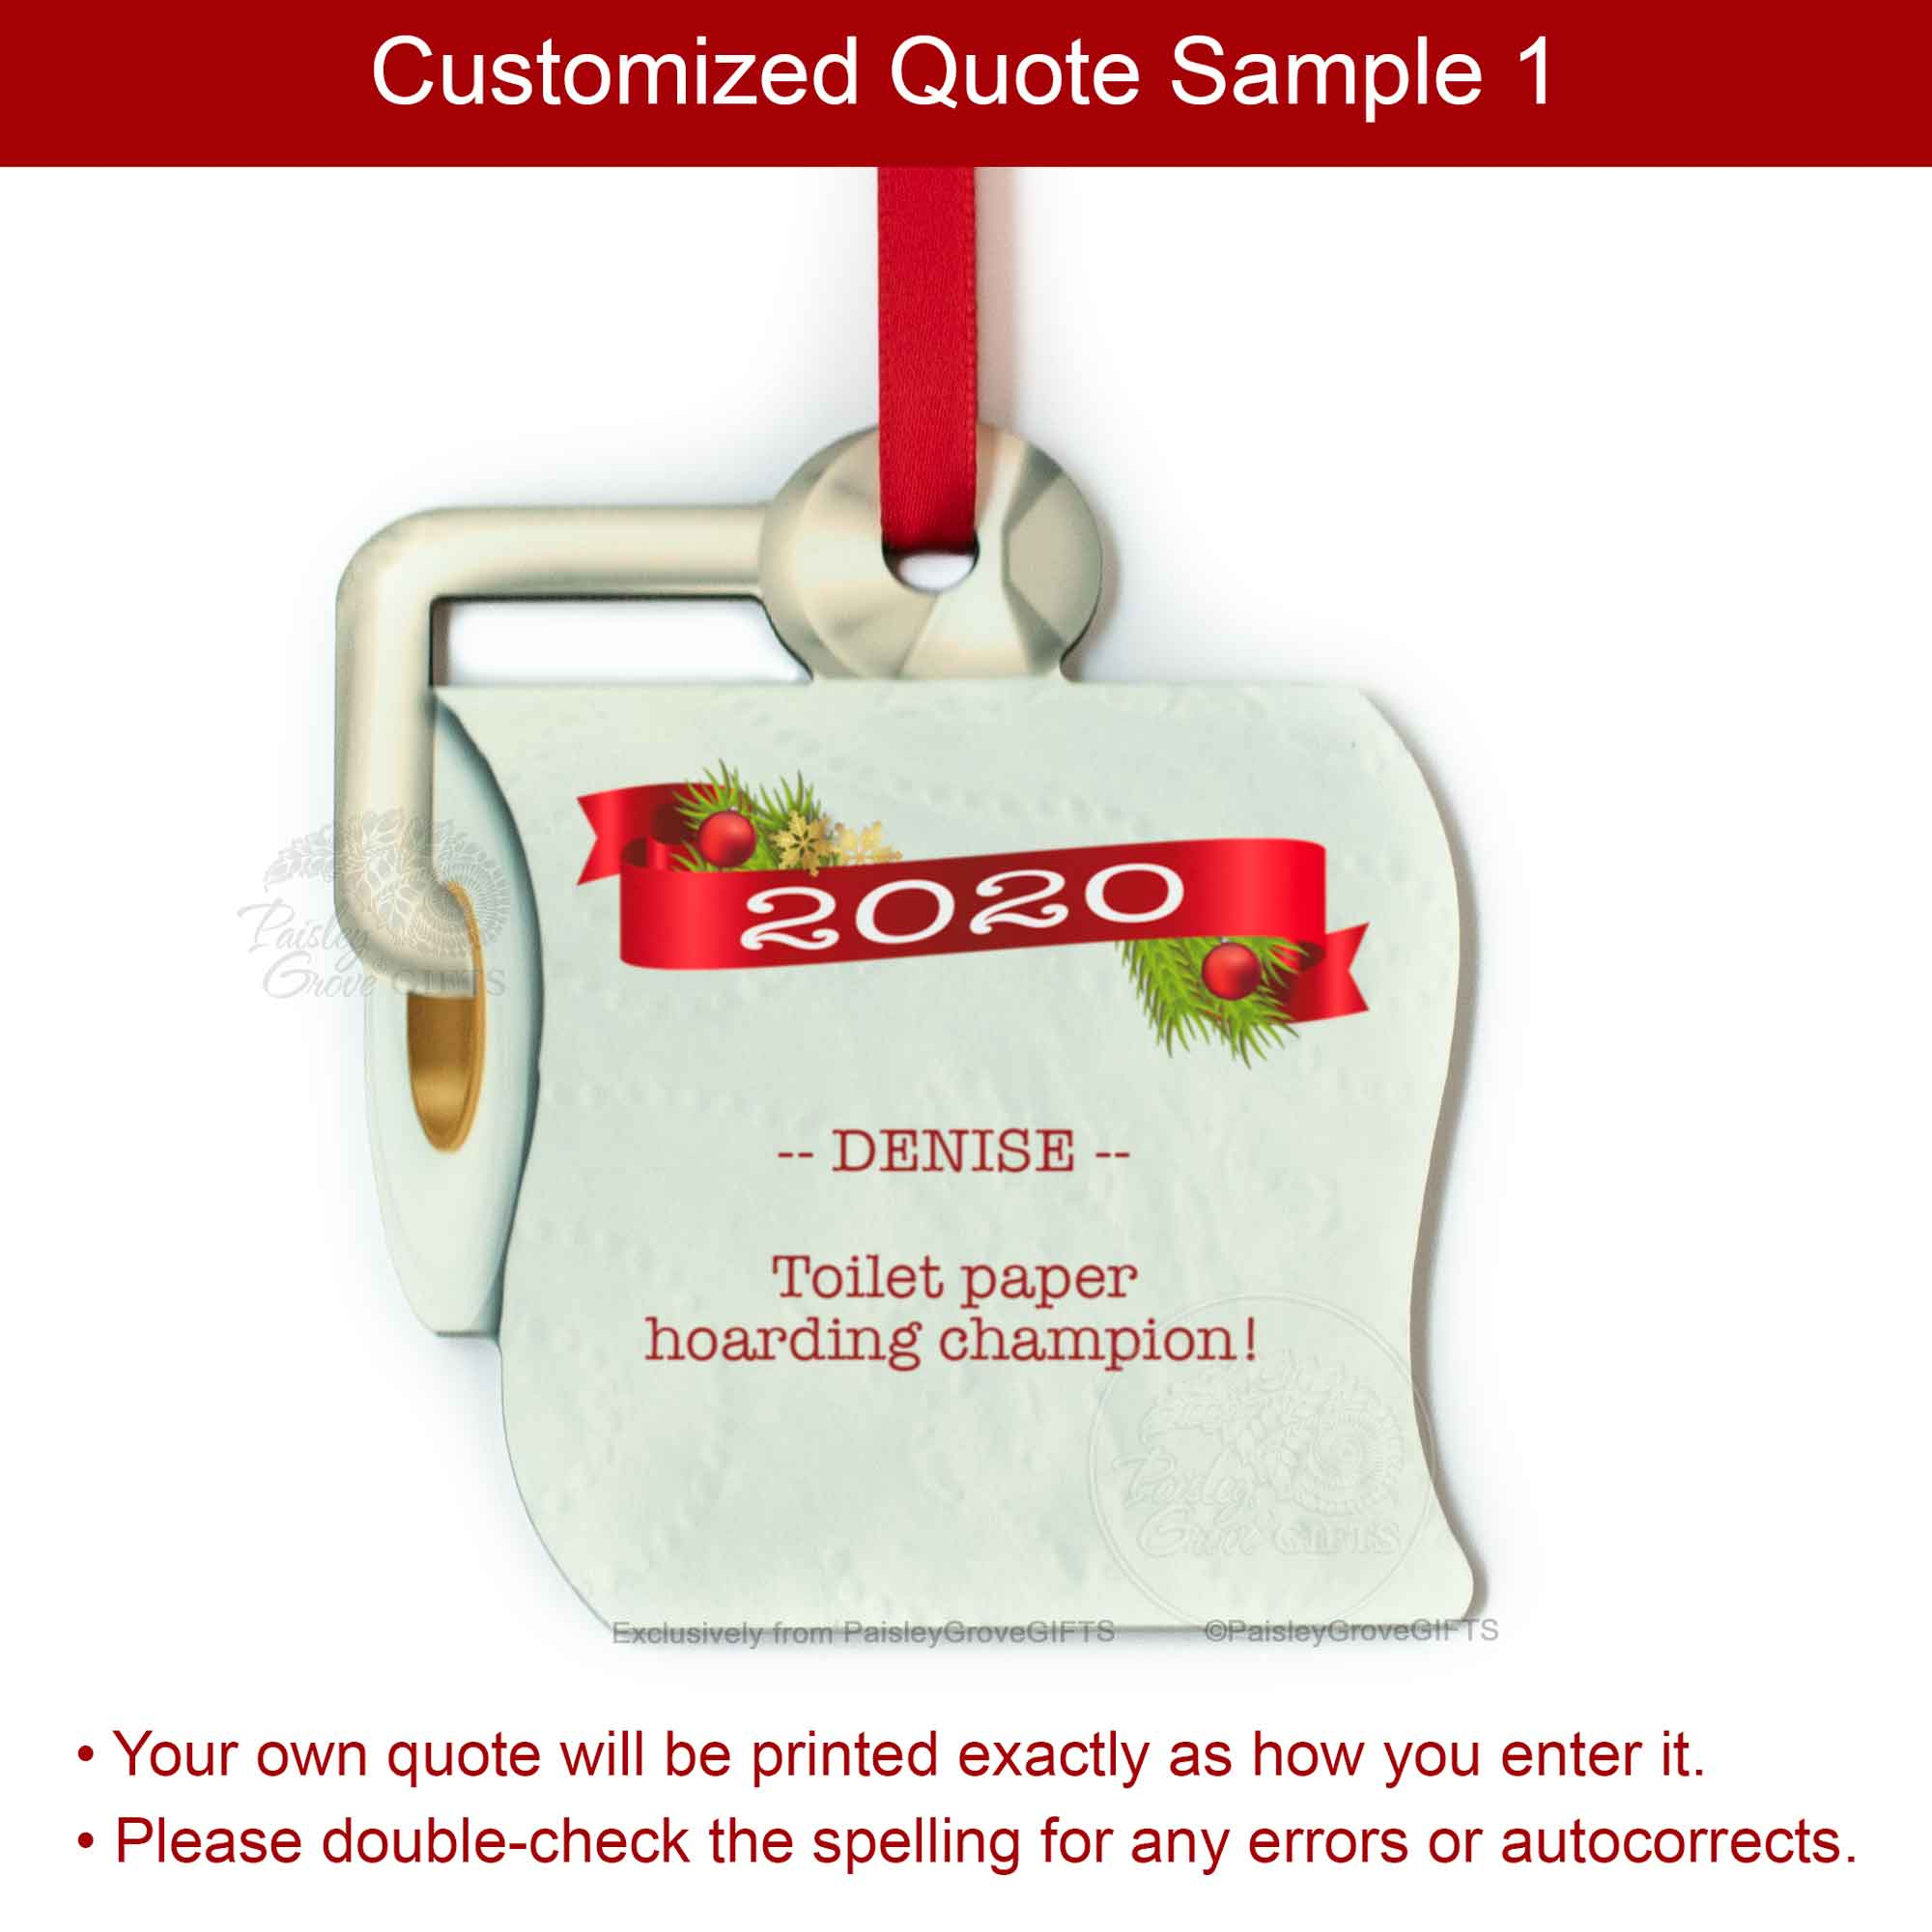 Copyright PaisleyGroveGIFTS S525p Funny Toilet Paper Christmas Ornament 2020 Sample Quote 1